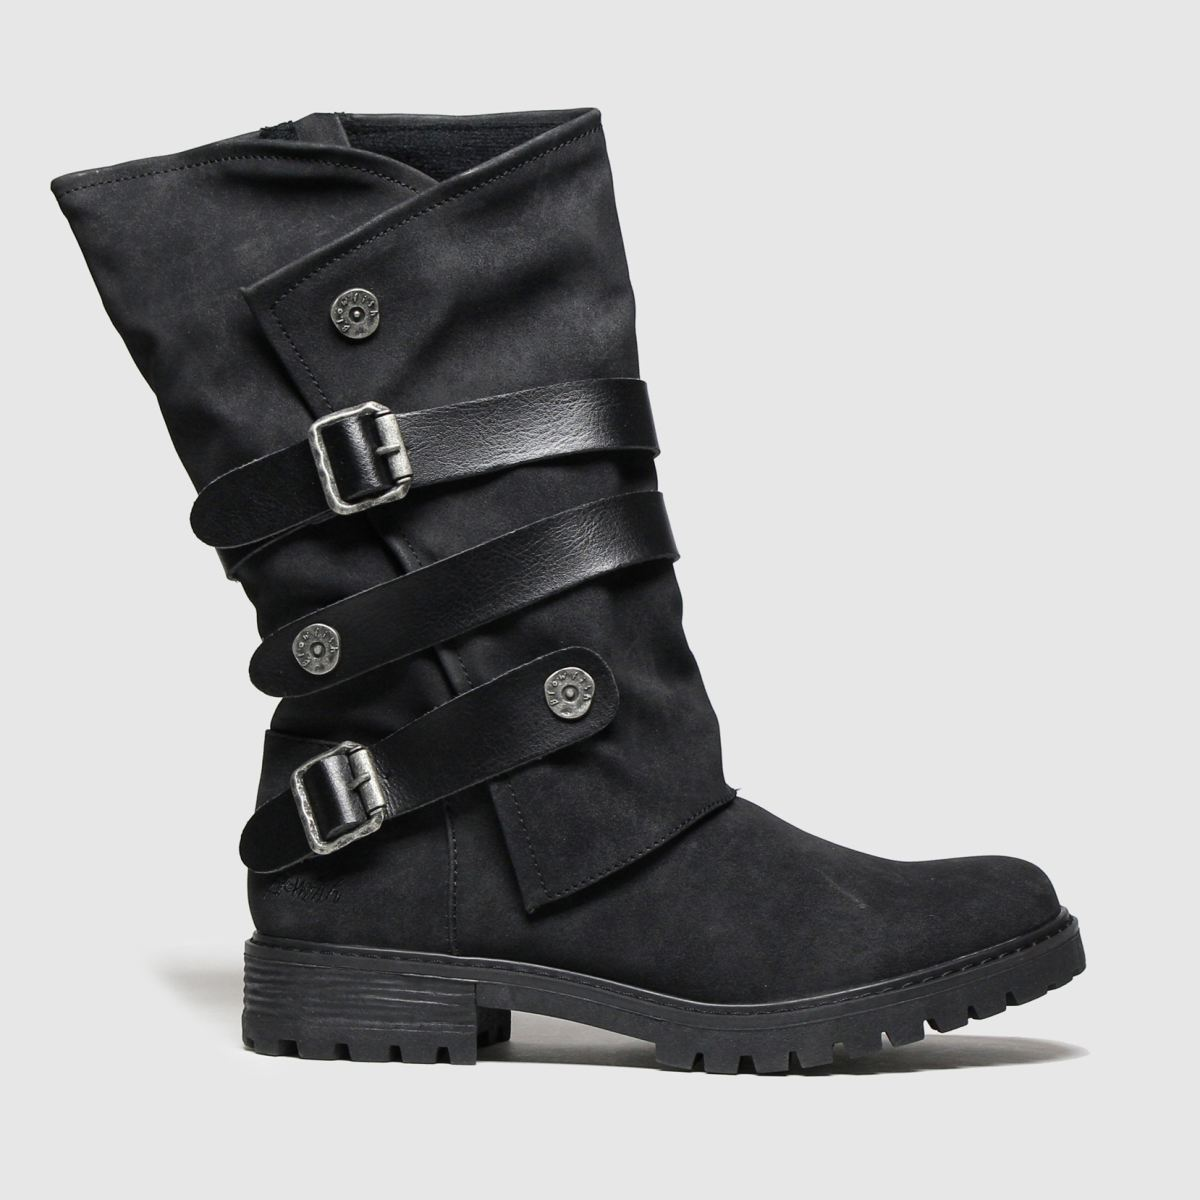 Blowfish Blowfish Black Rider Vegan Boots